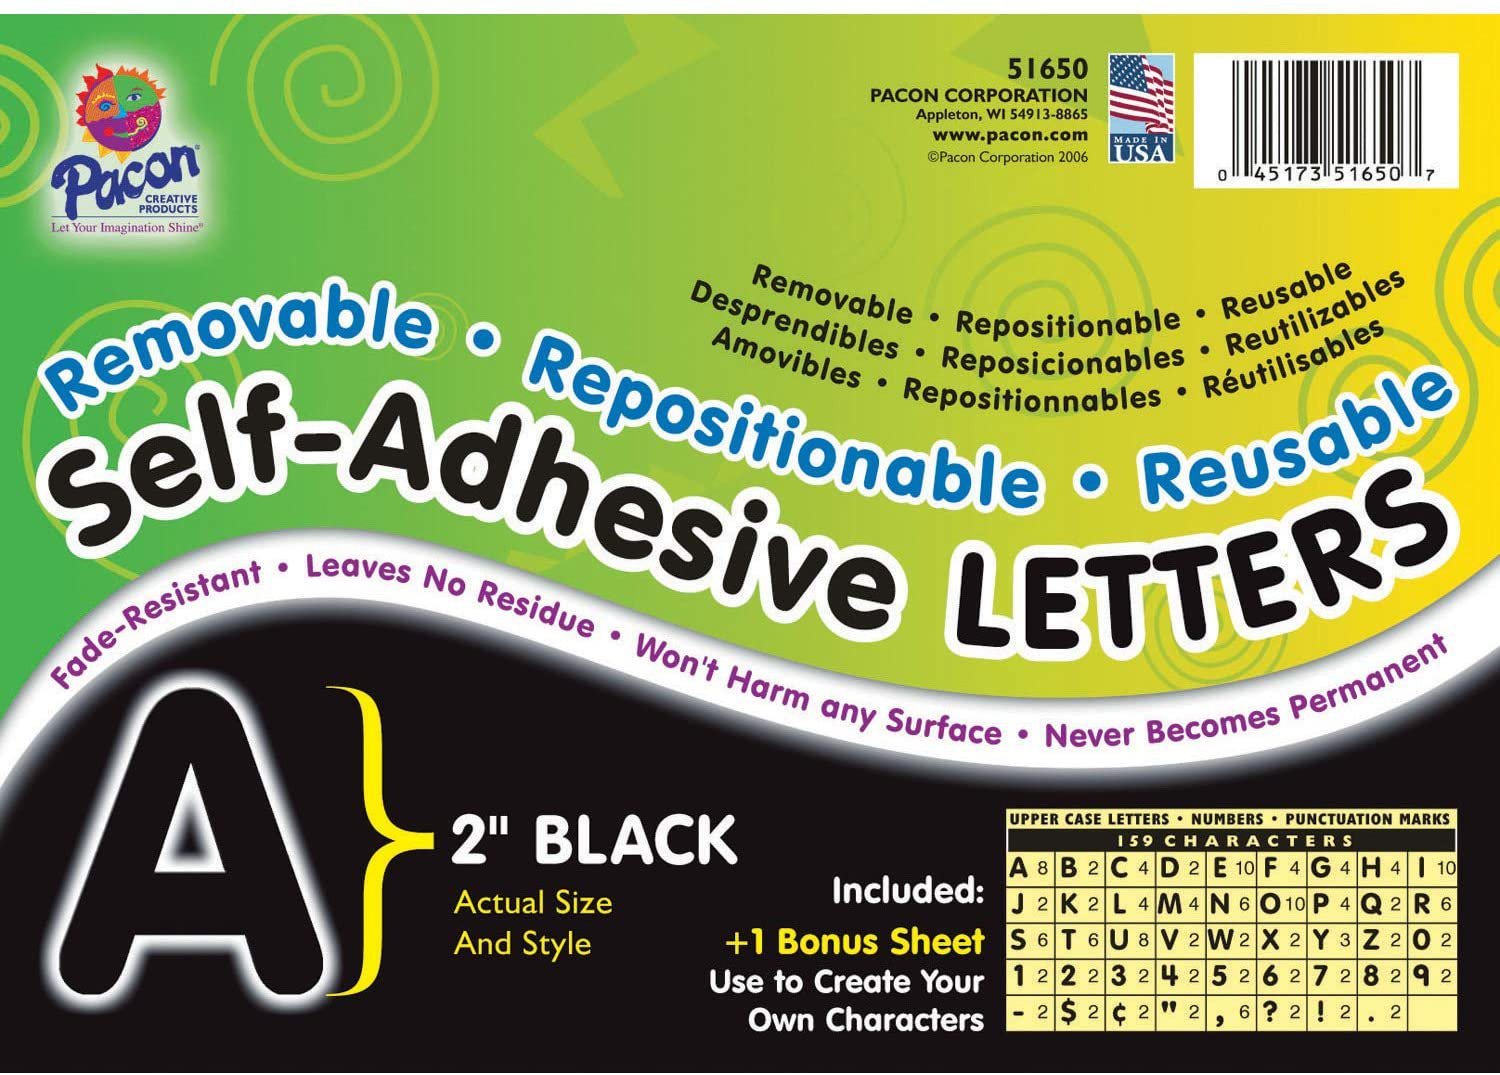 "Pacon Self-Adhesive Letters, Black, Puffy Font, 2"", 159 Characters"